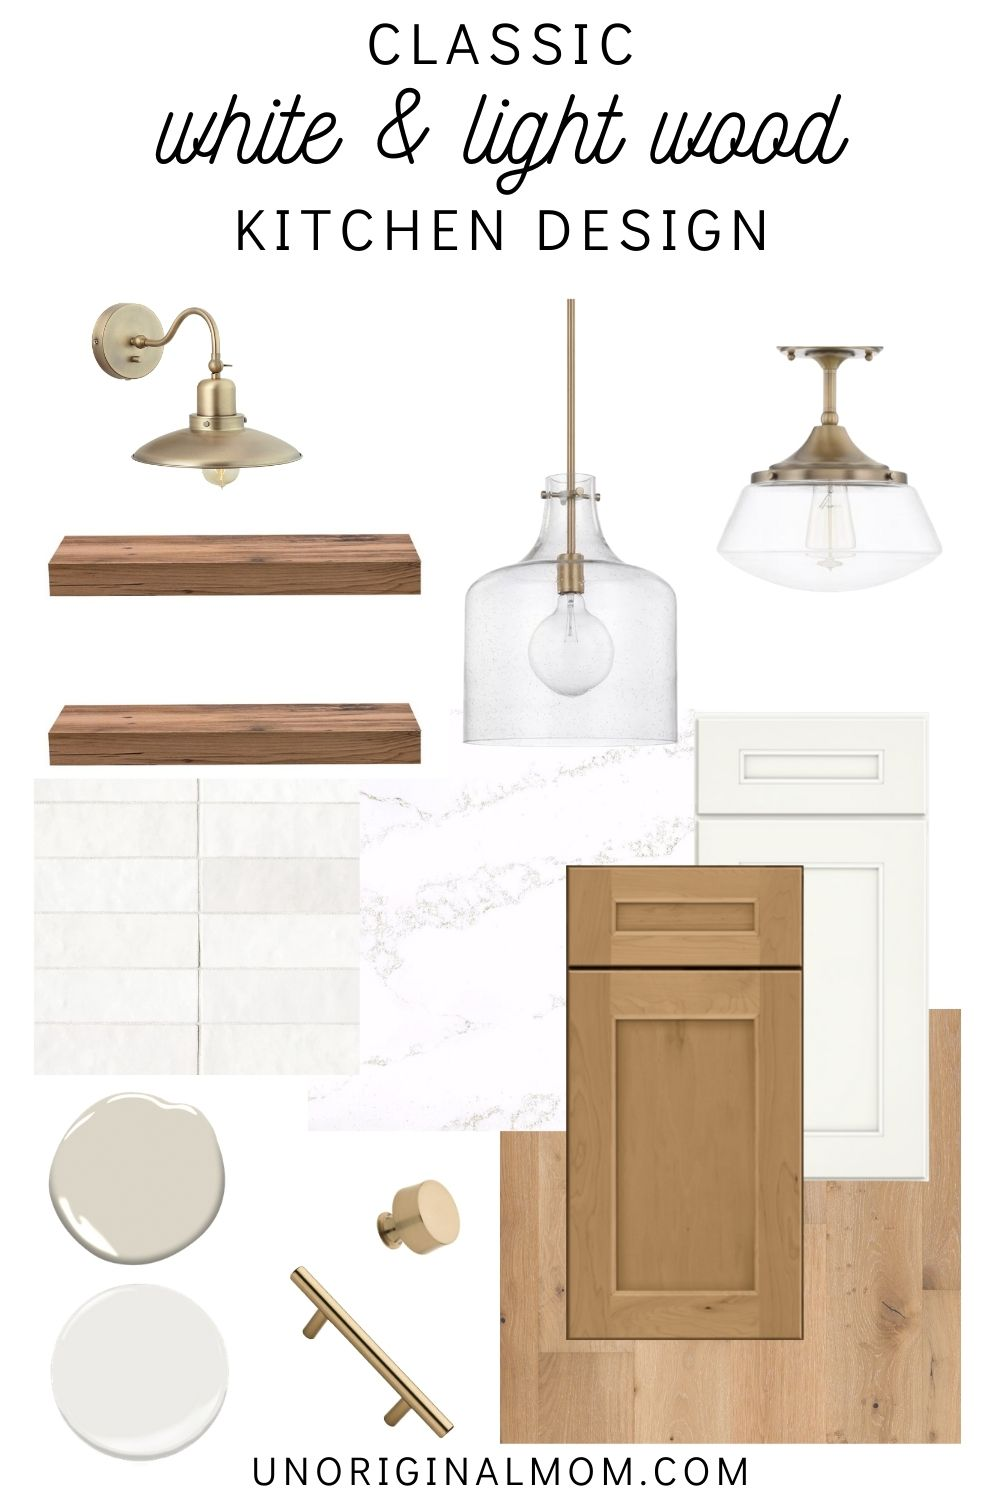 Classic white and light wood kitchen design with gold accents - timeless kitchen ideas